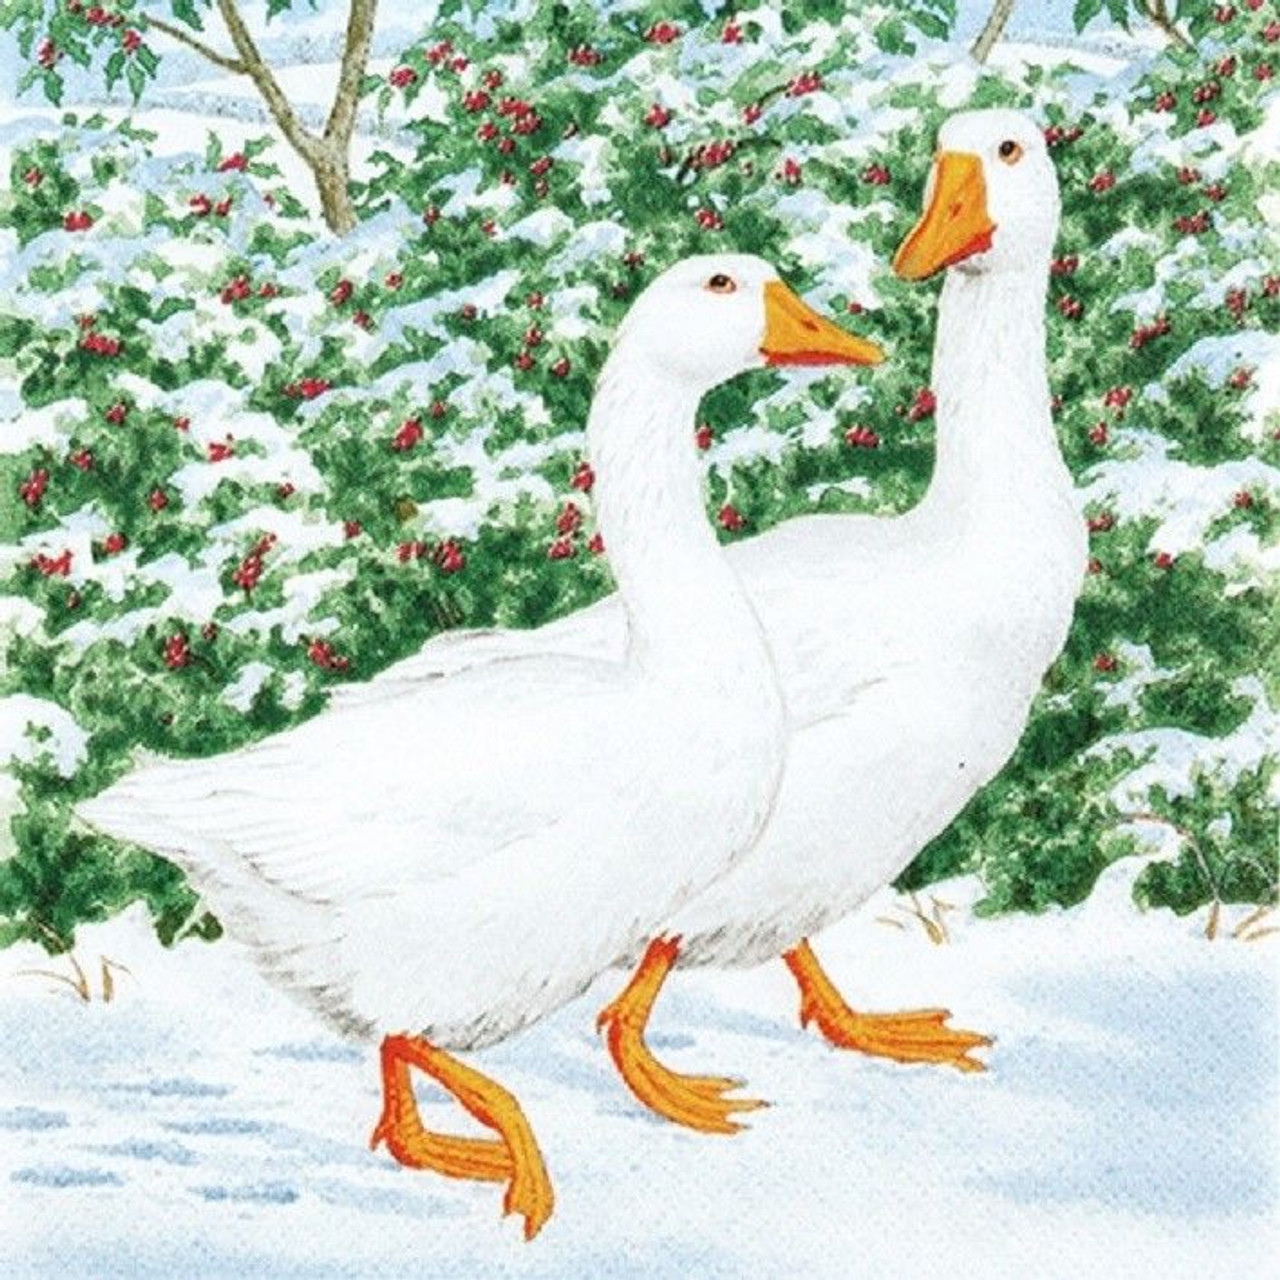 4 Lunch Paper Napkins for Decoupage Craft Vintage Napkins   Geese Couple